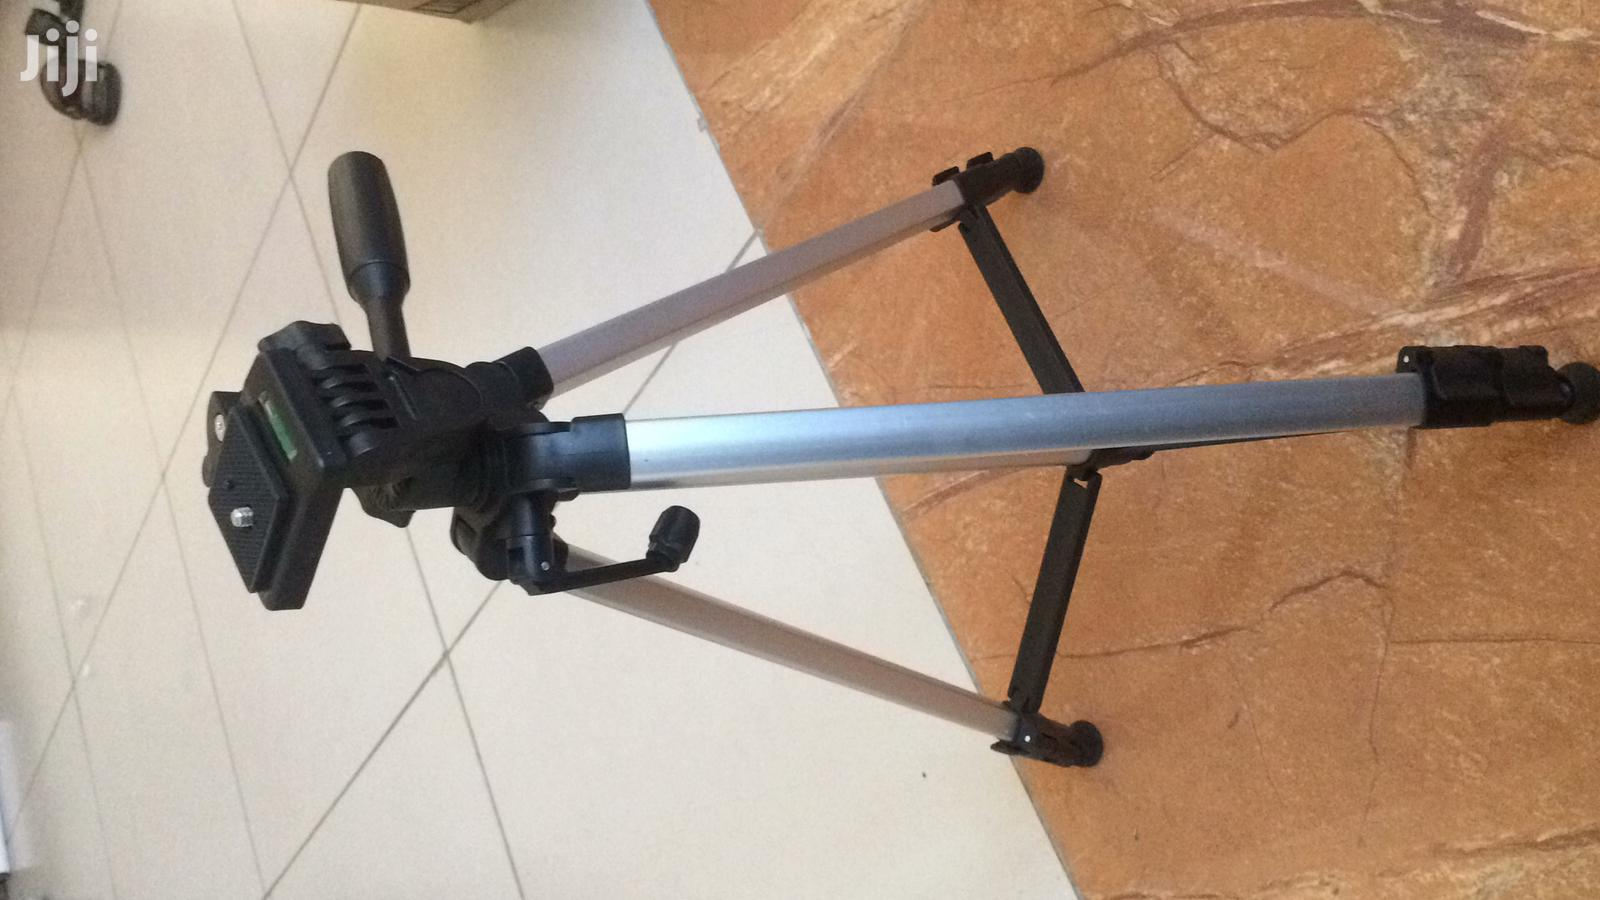 Aluminium Alloy Extendable Tripod Stand 330A | Accessories for Mobile Phones & Tablets for sale in Mvita, Mombasa, Kenya